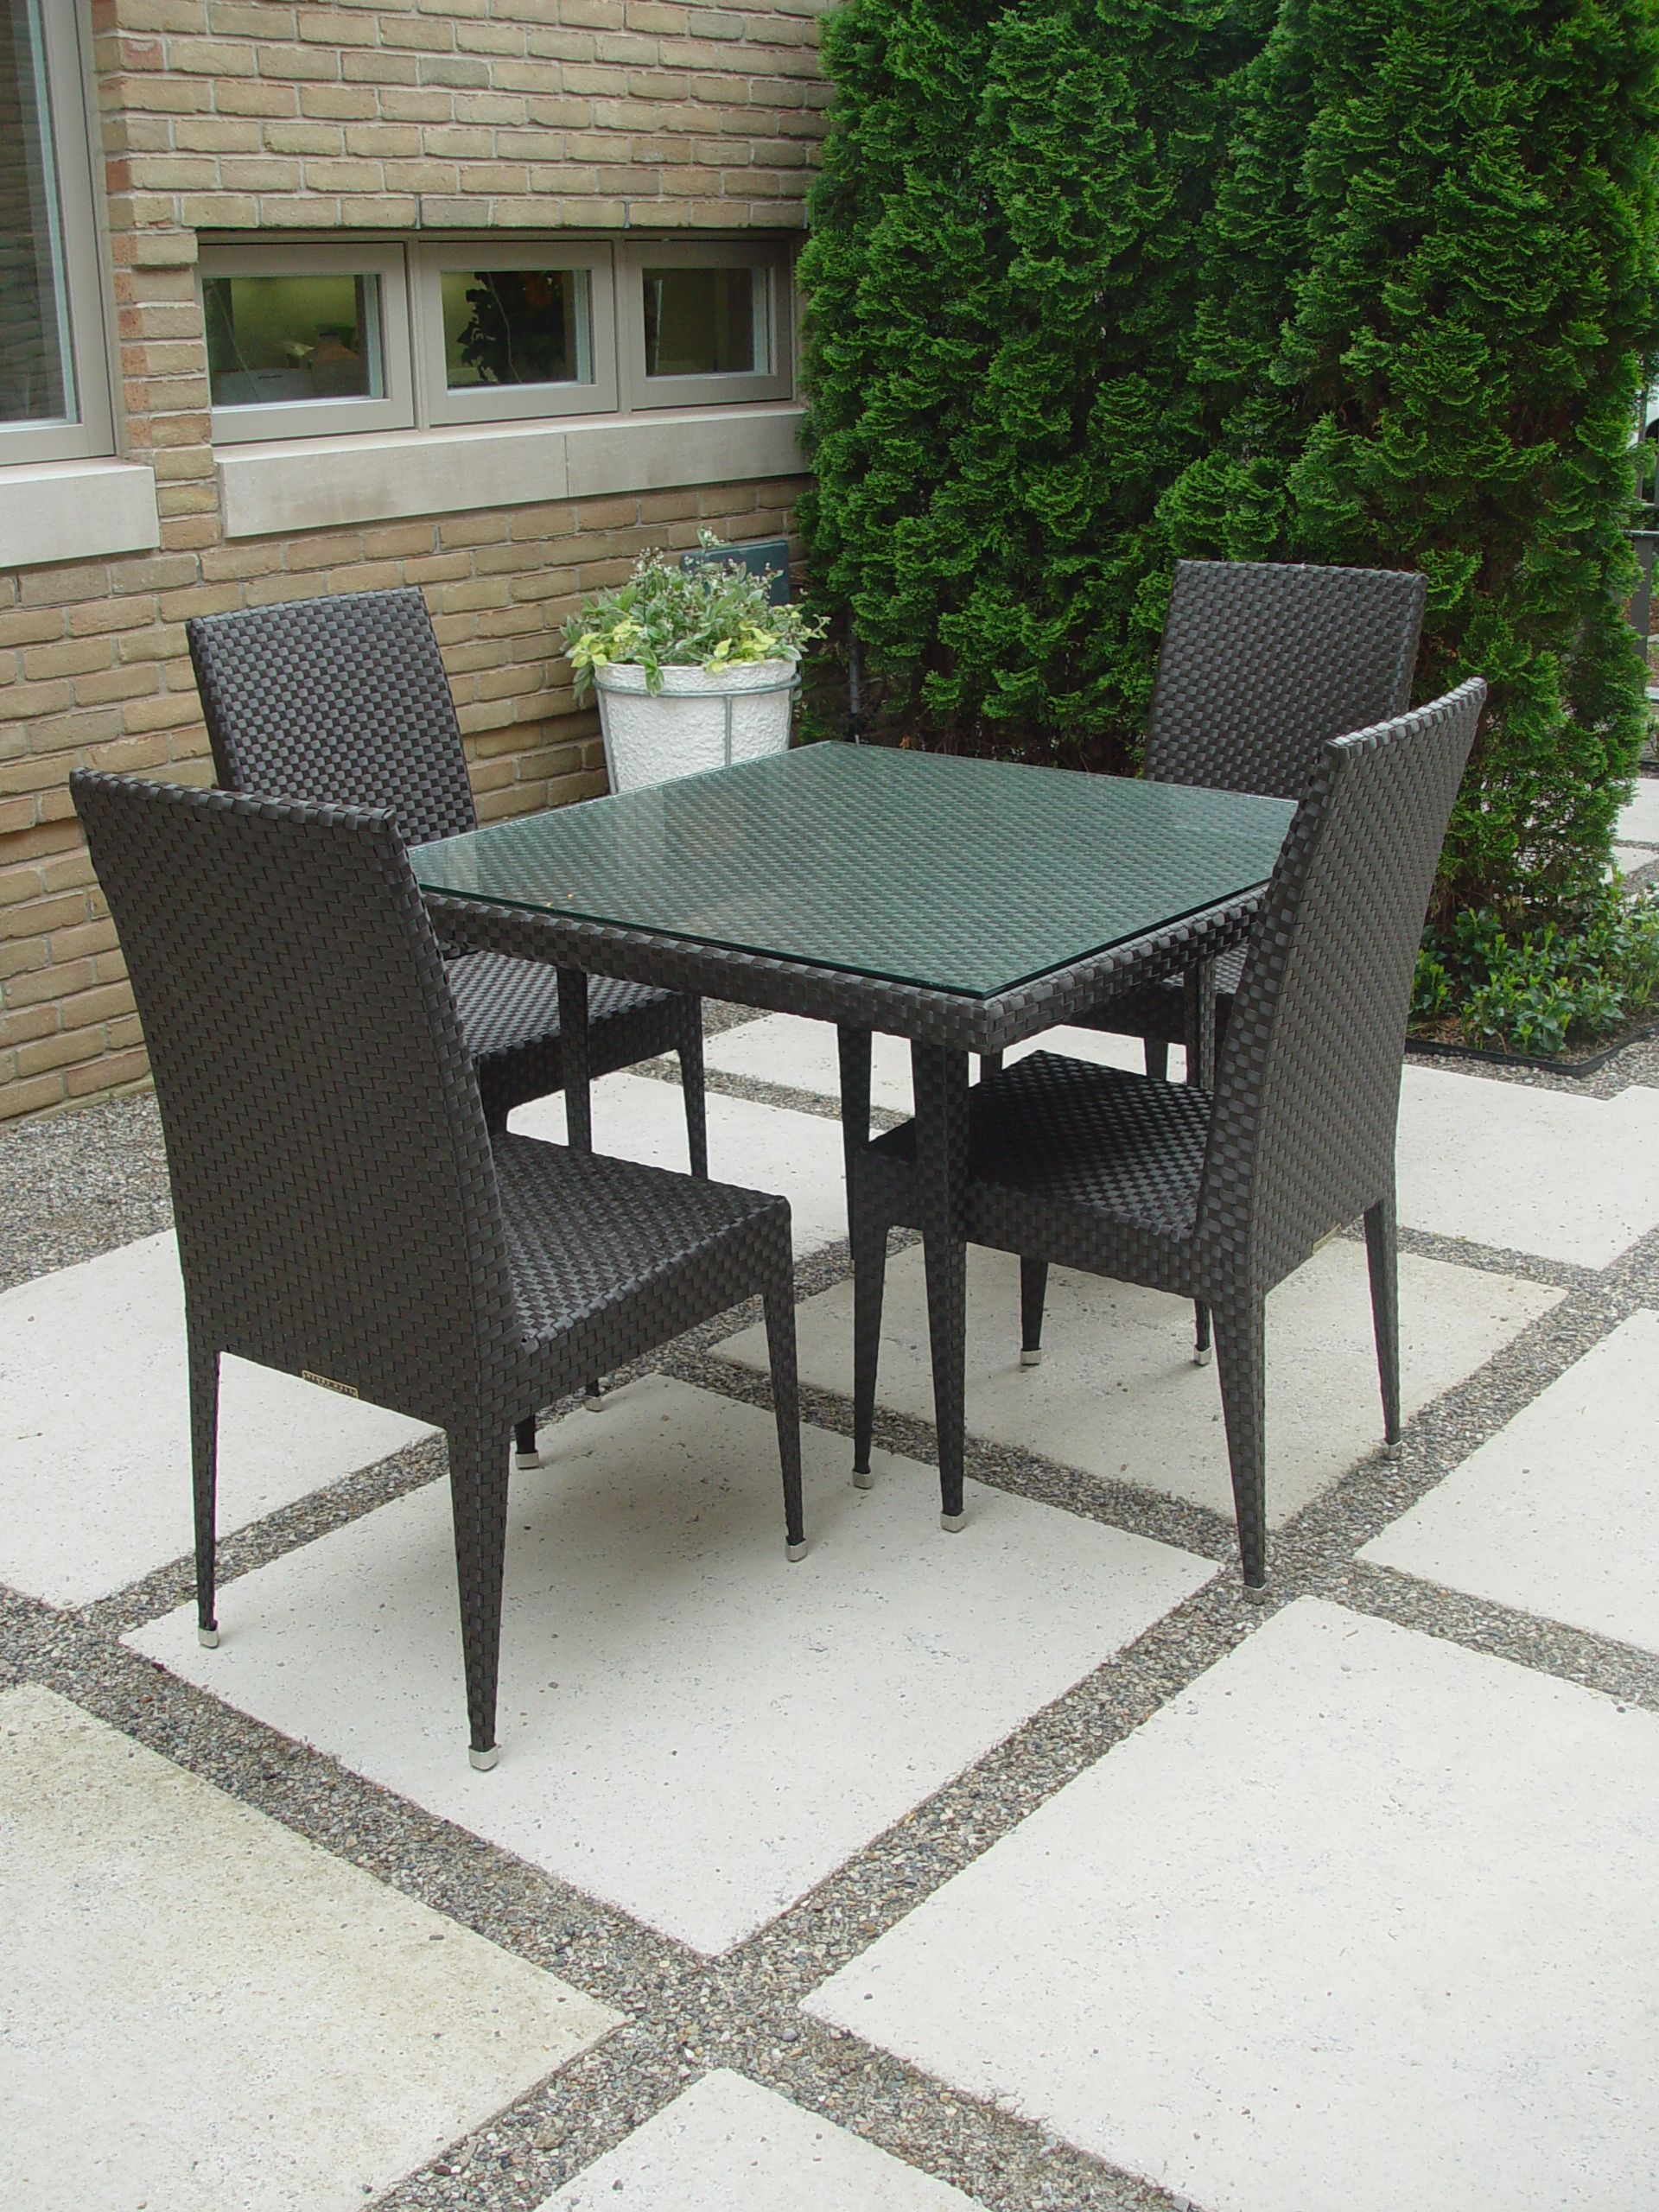 Contemporary resin garden furniture garden furniture - Practical and affordable contemporary plastic garden furniture ...